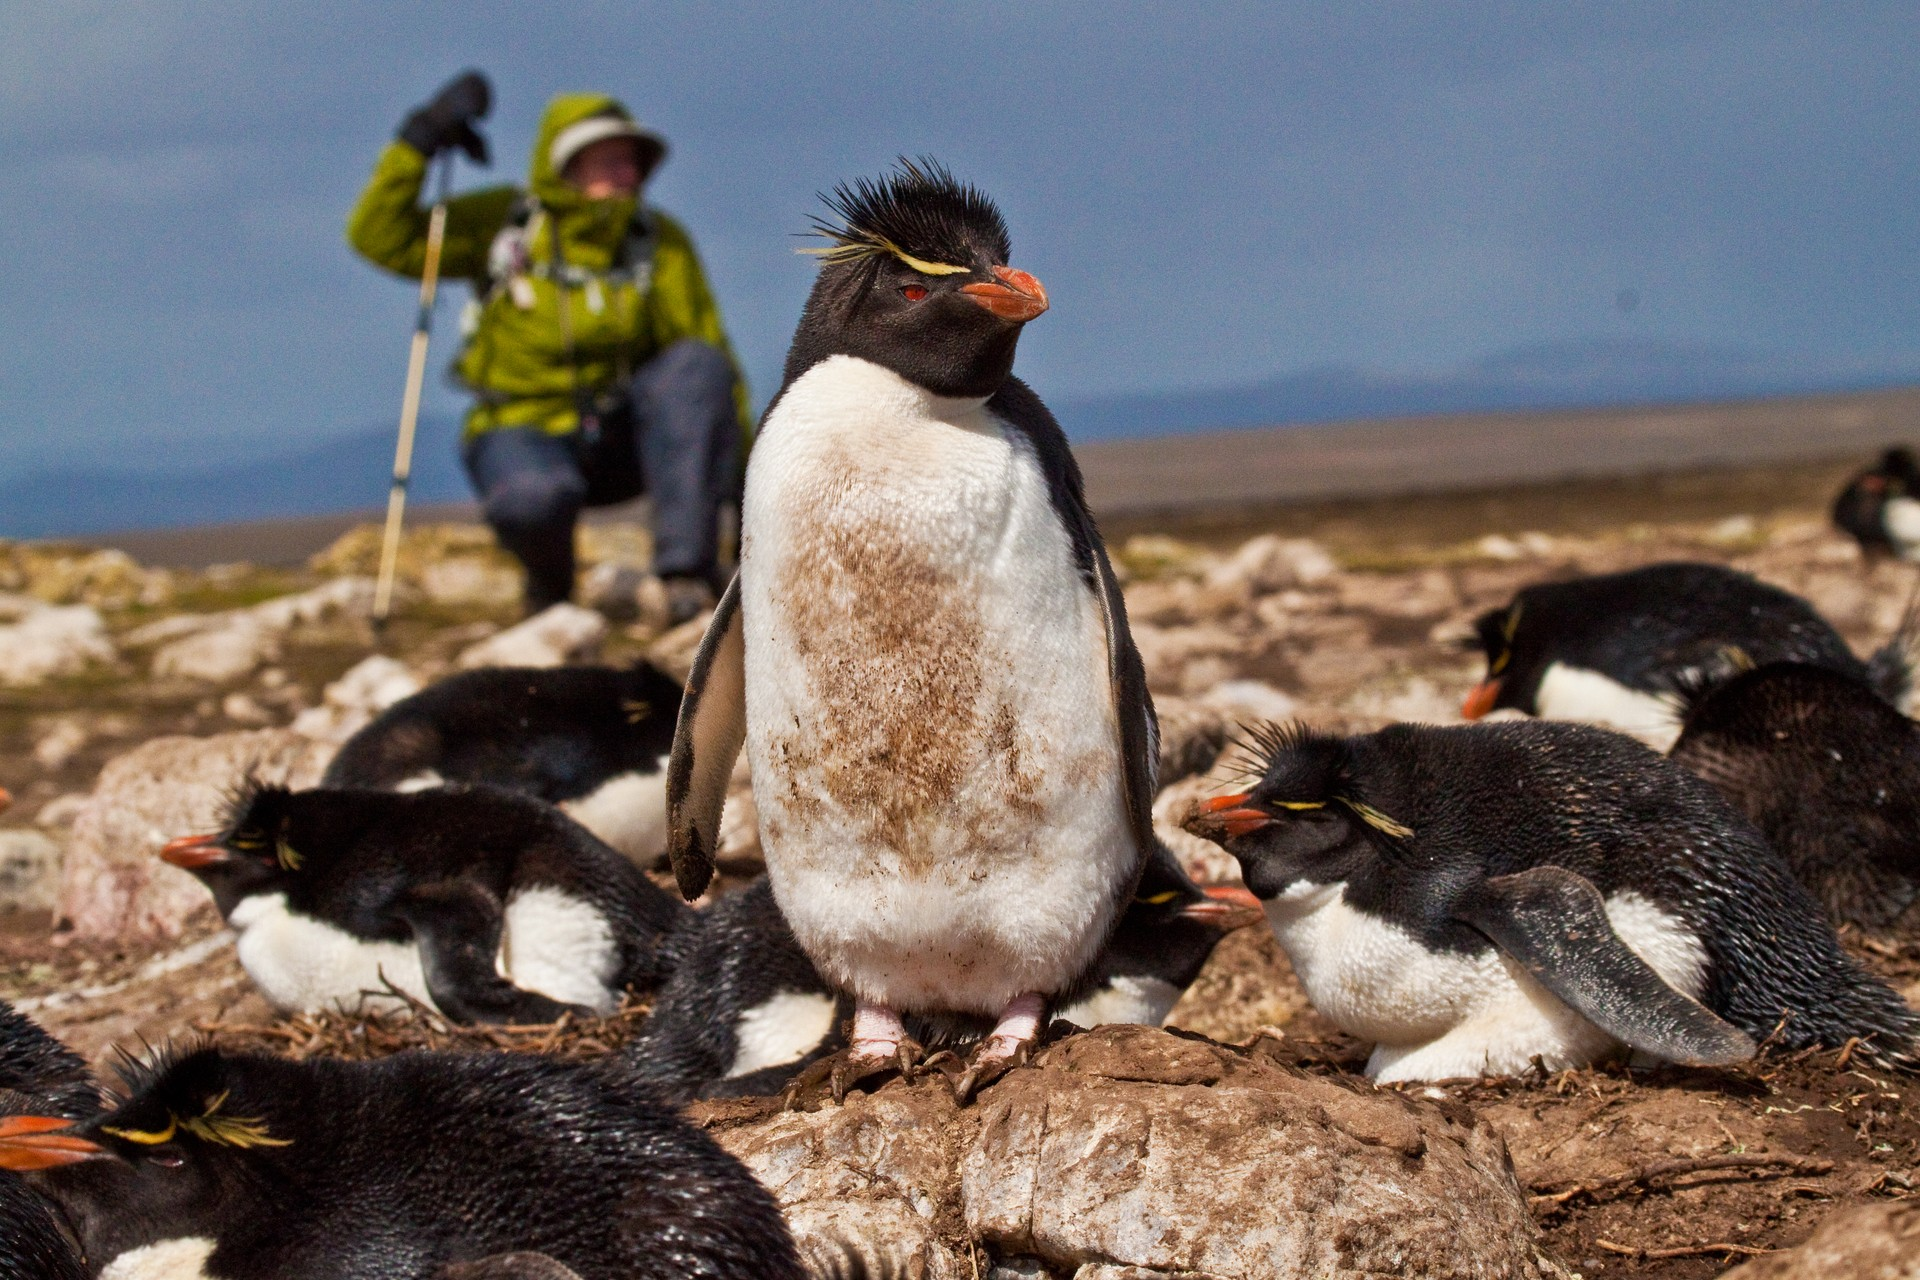 Viewing penguins in the Falklands